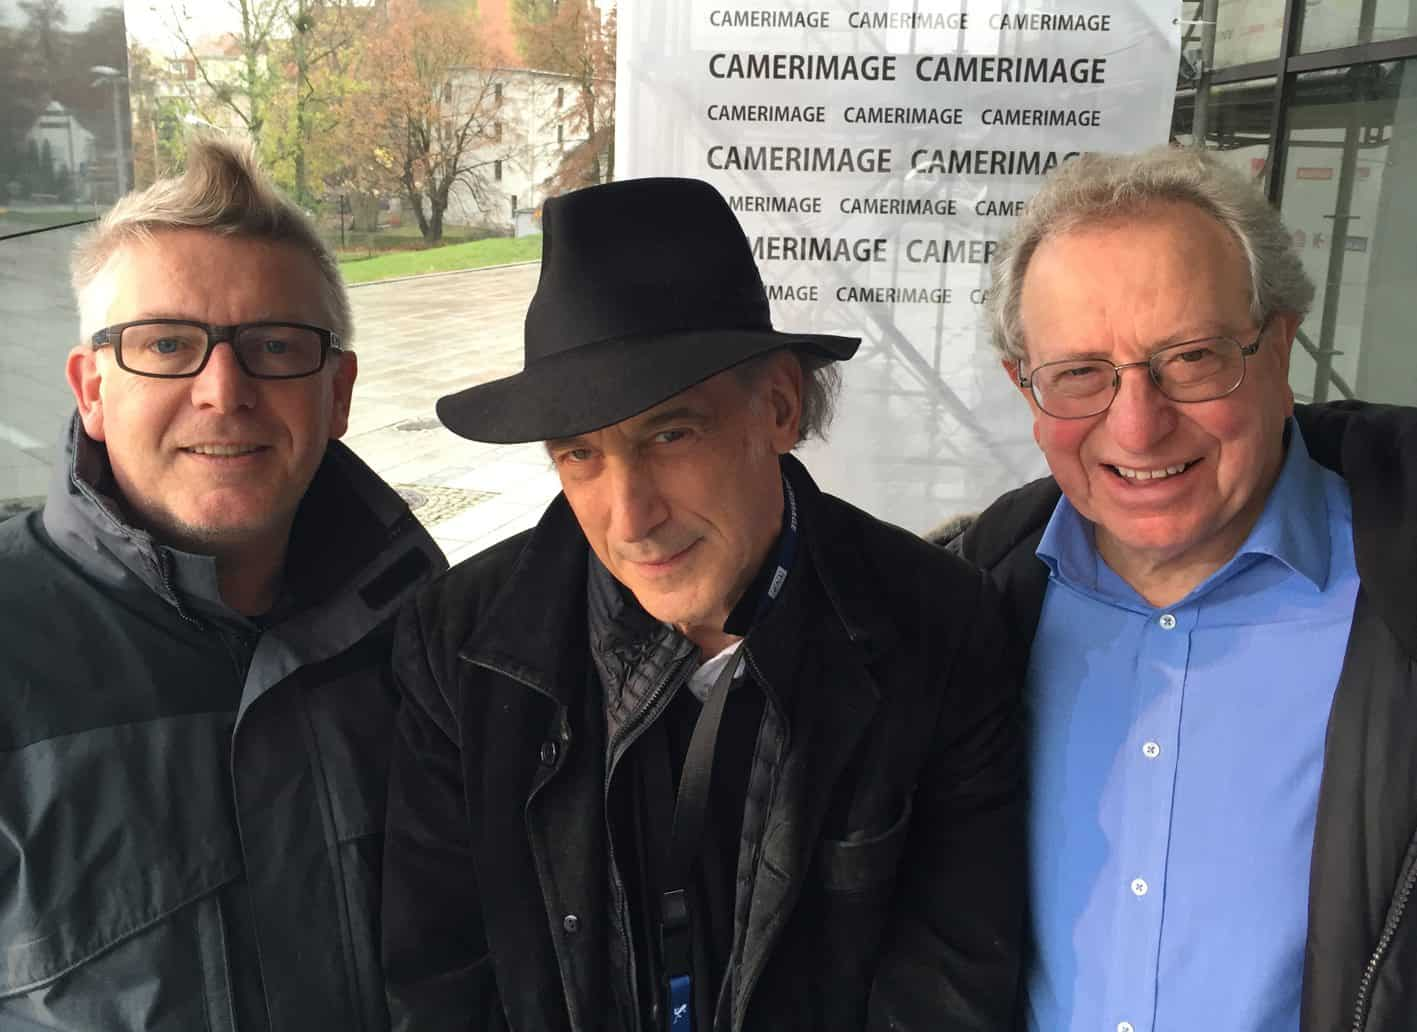 Ron Prince with Ed Lachman ASC and Alan Lowne at Camerimage 2015